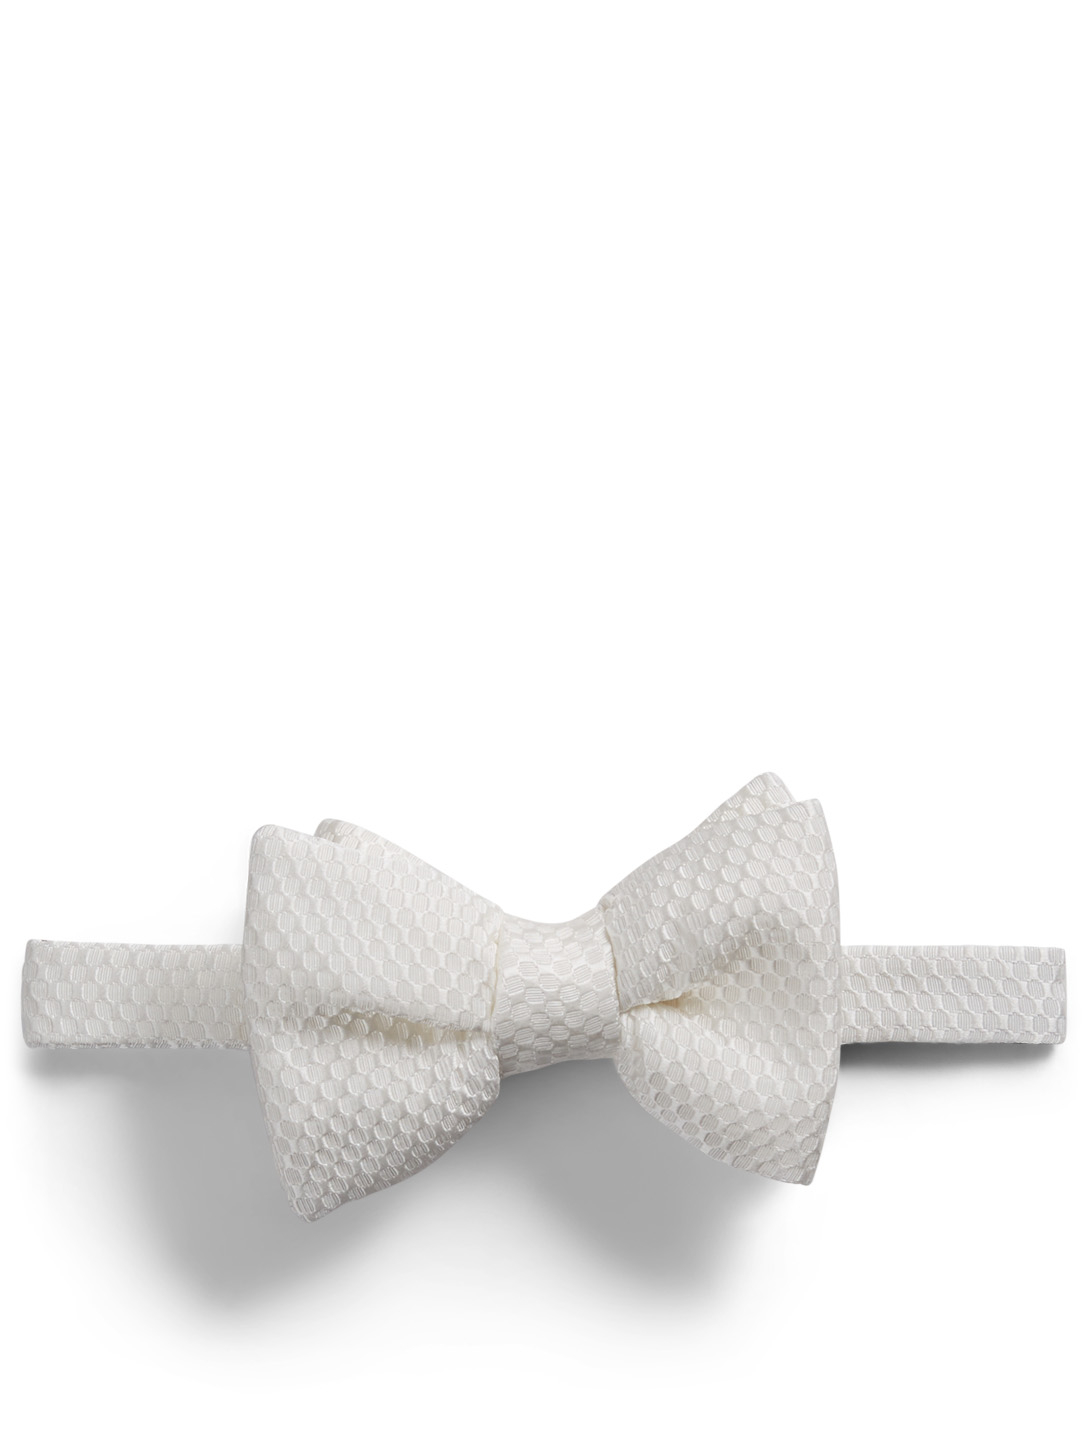 TOM FORD Honeycomb Bow Tie Men's White